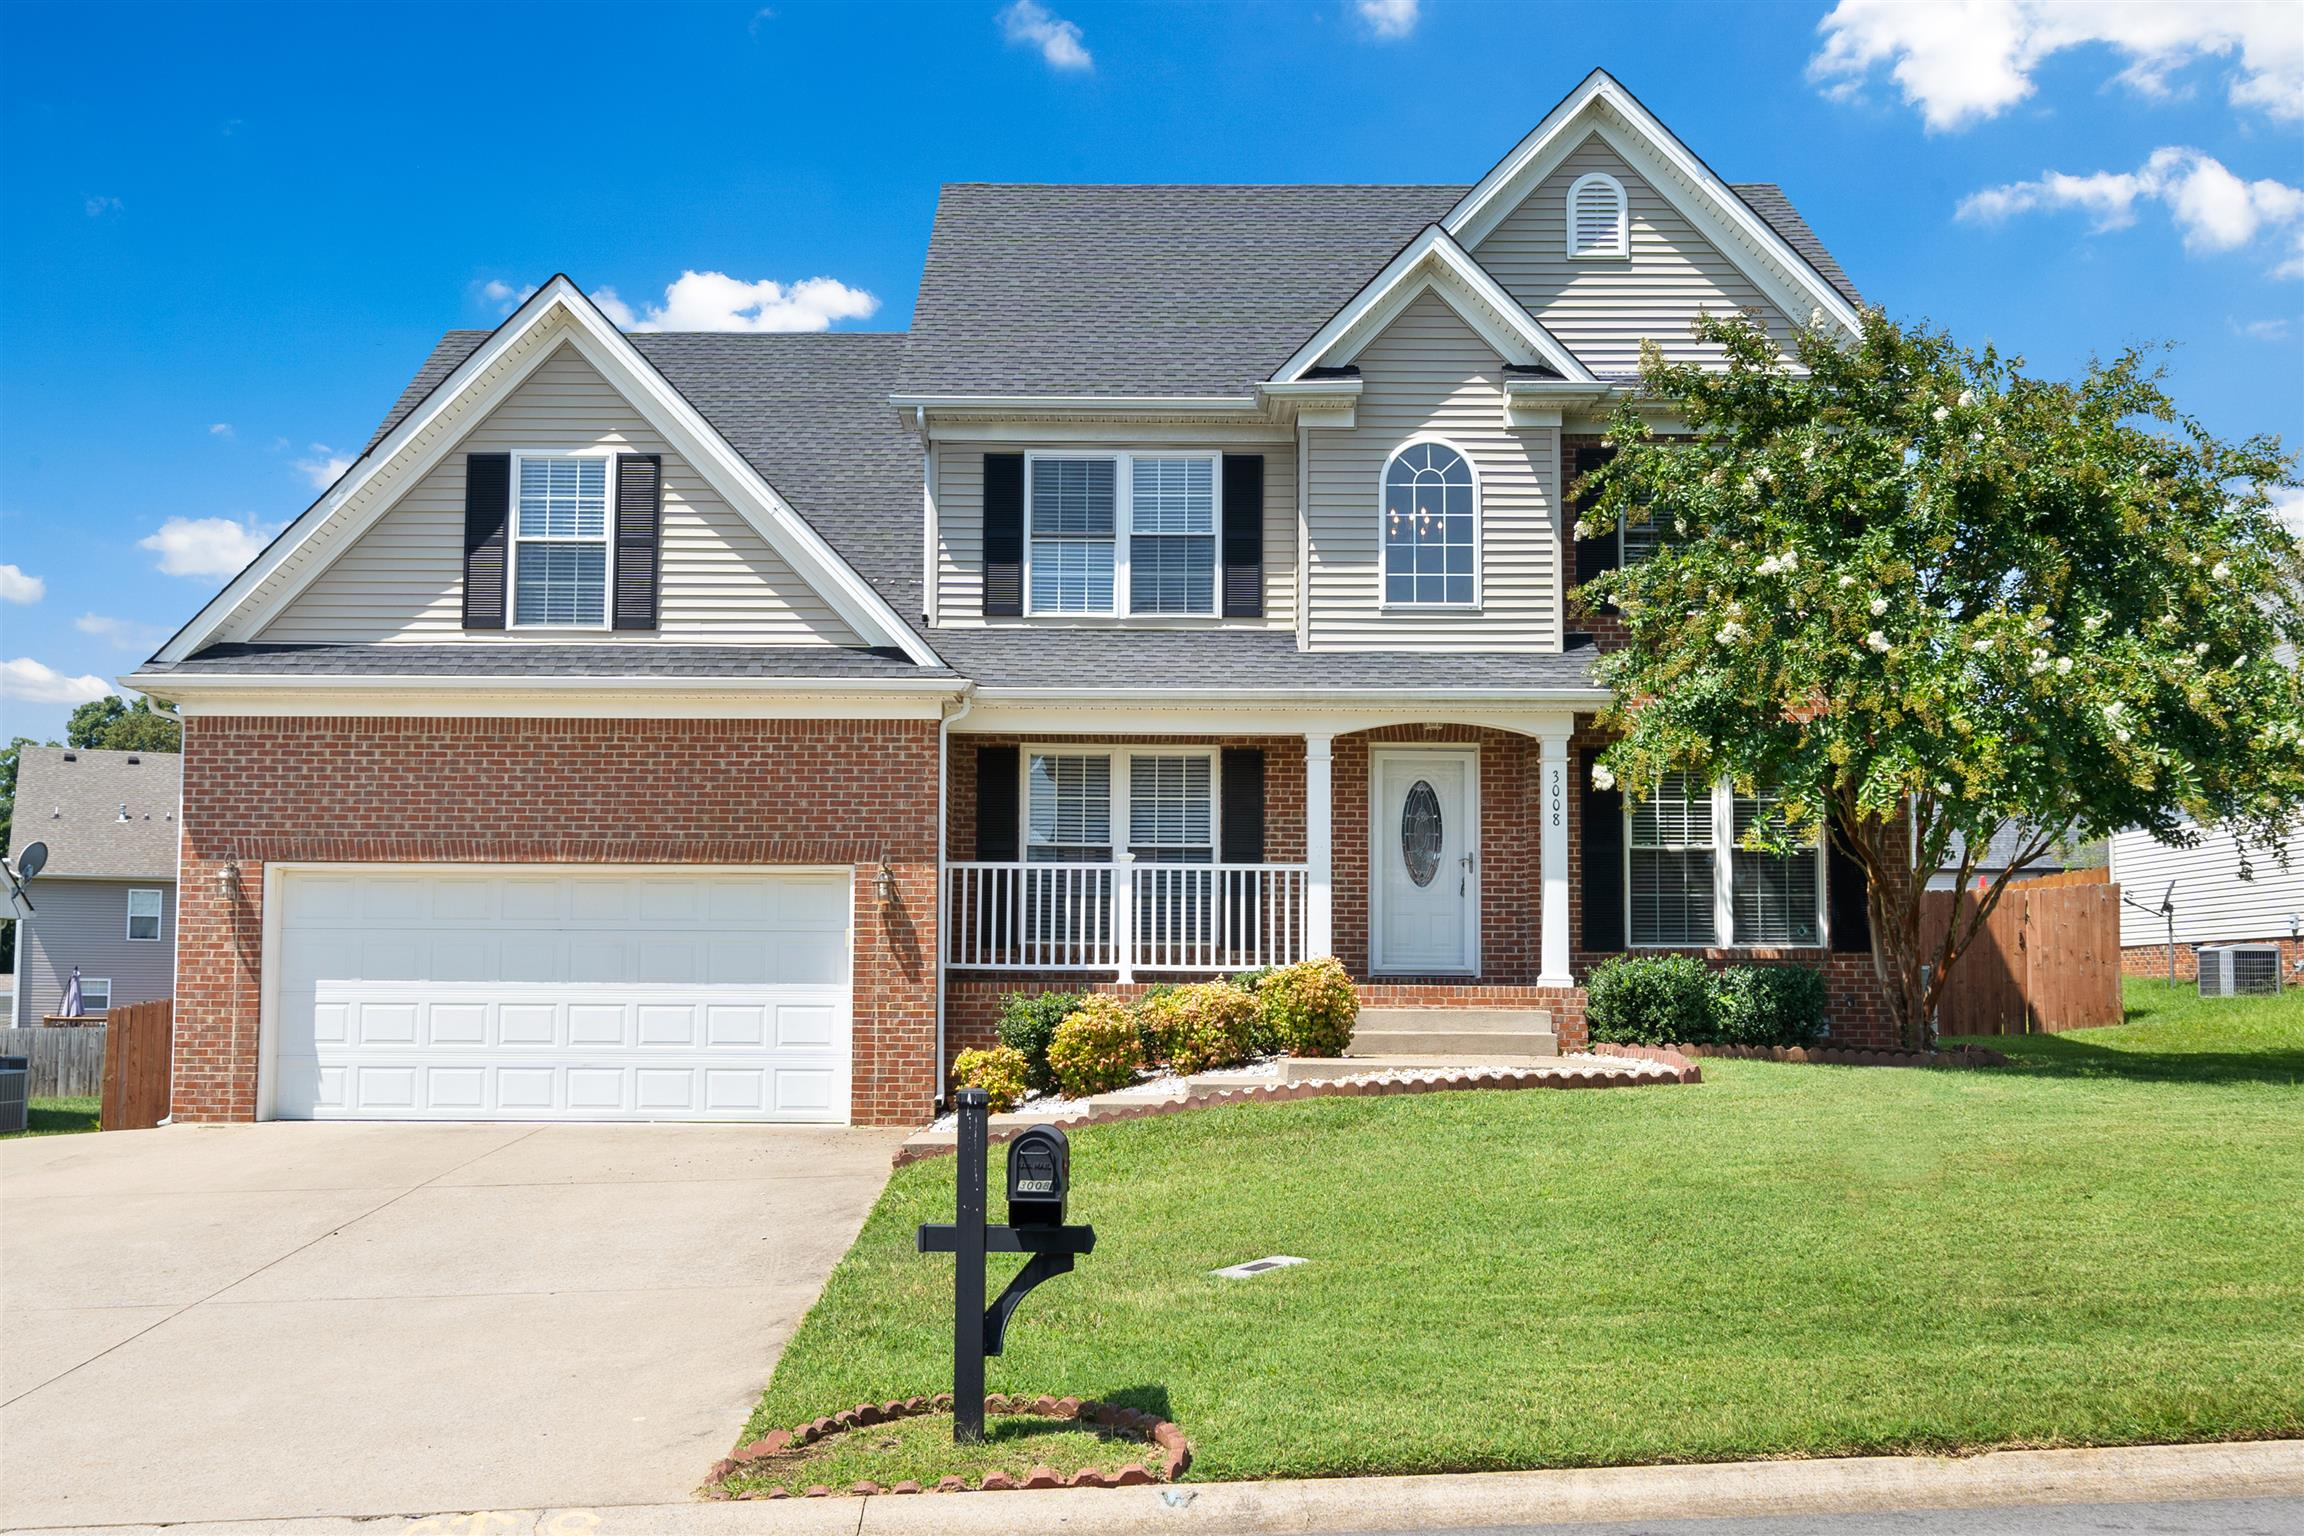 3008 Outfitters Dr, Clarksville, TN 37040 - Clarksville, TN real estate listing